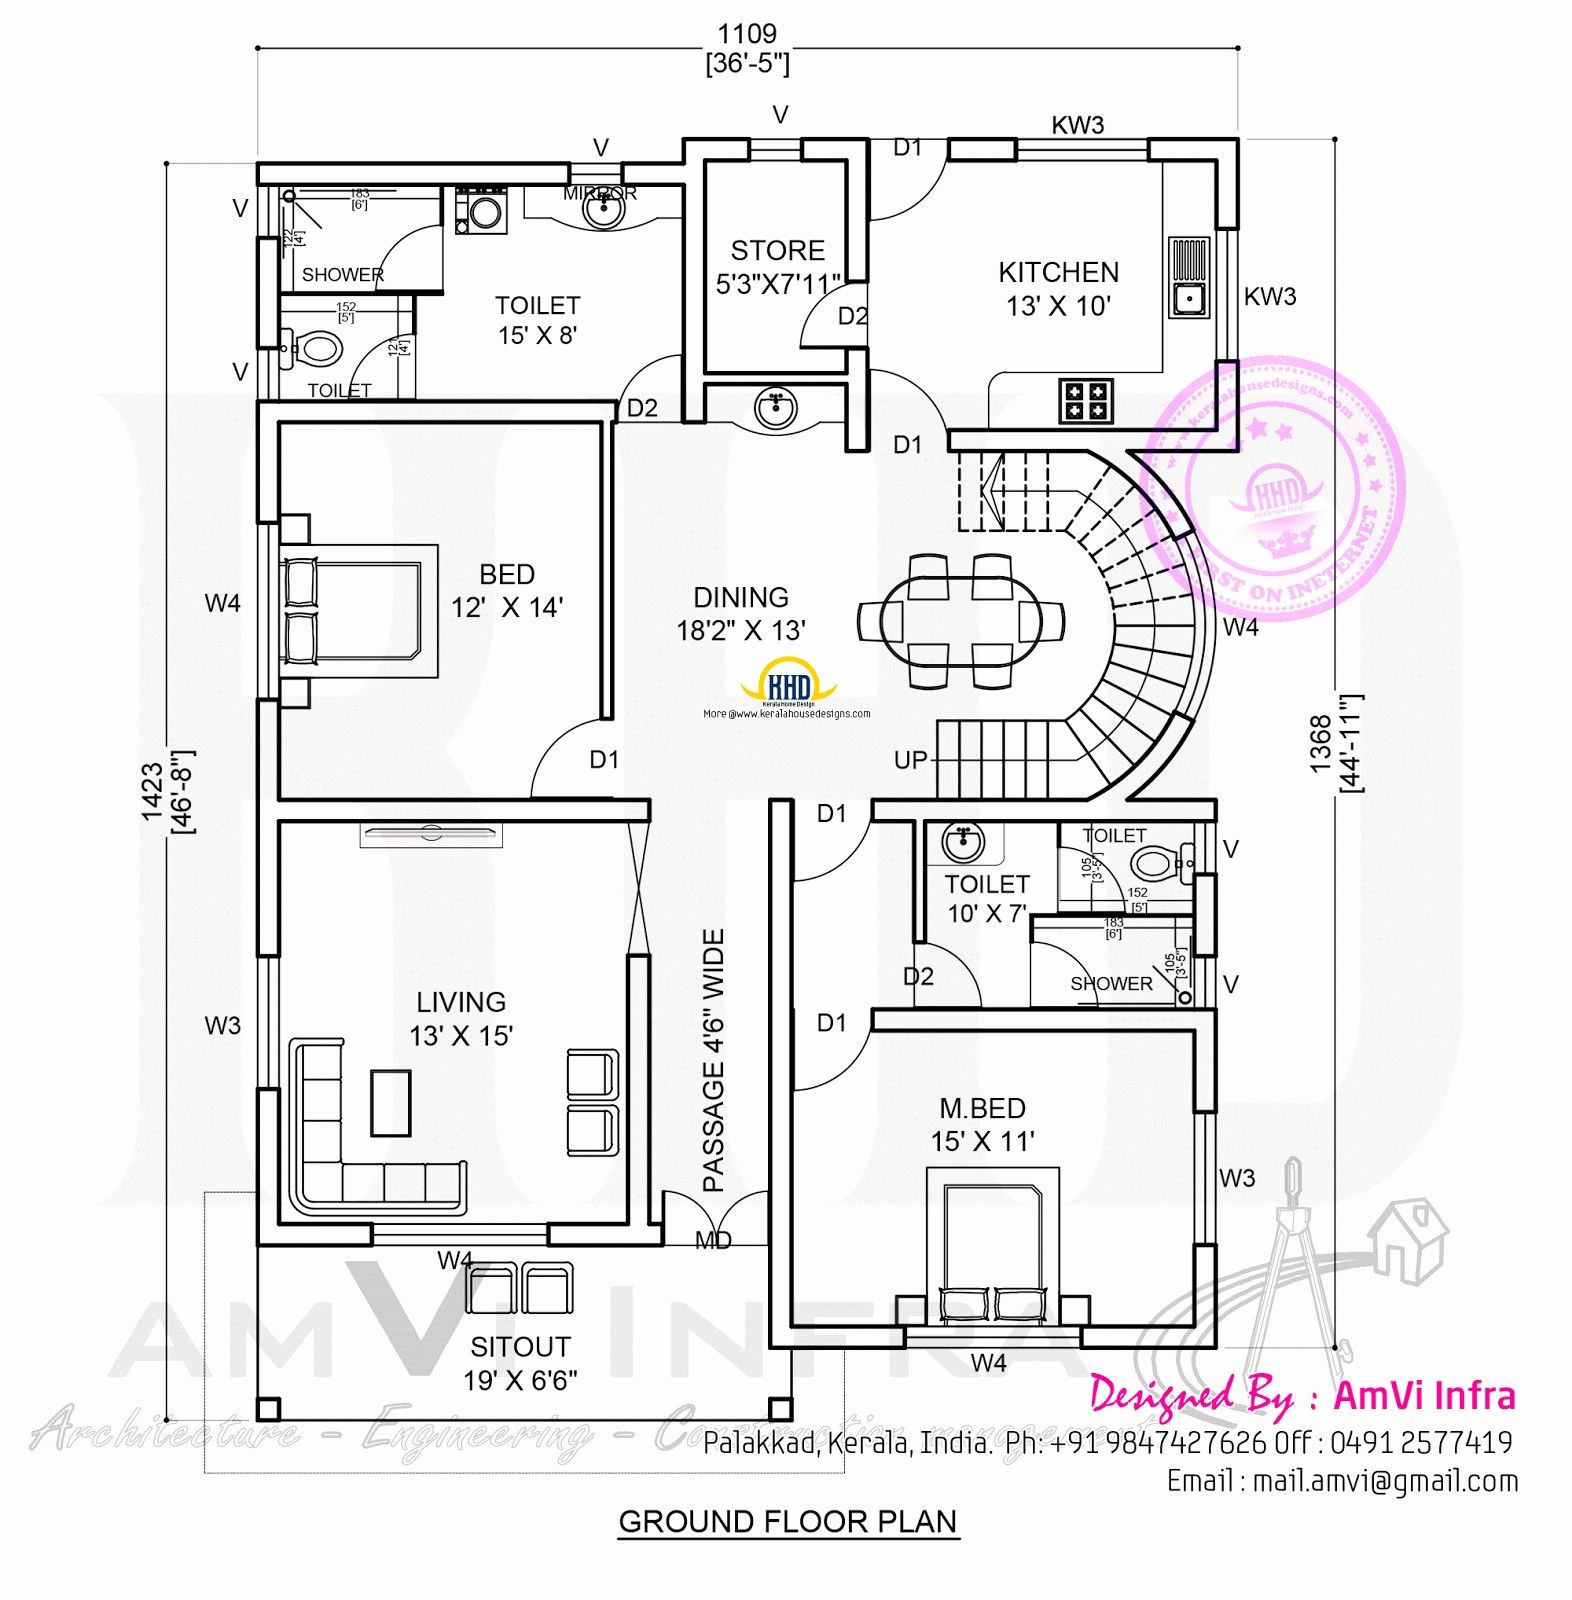 Duplex house floor plans indian style unique bedroom ripping also best floors images on pinterest architecture design rh